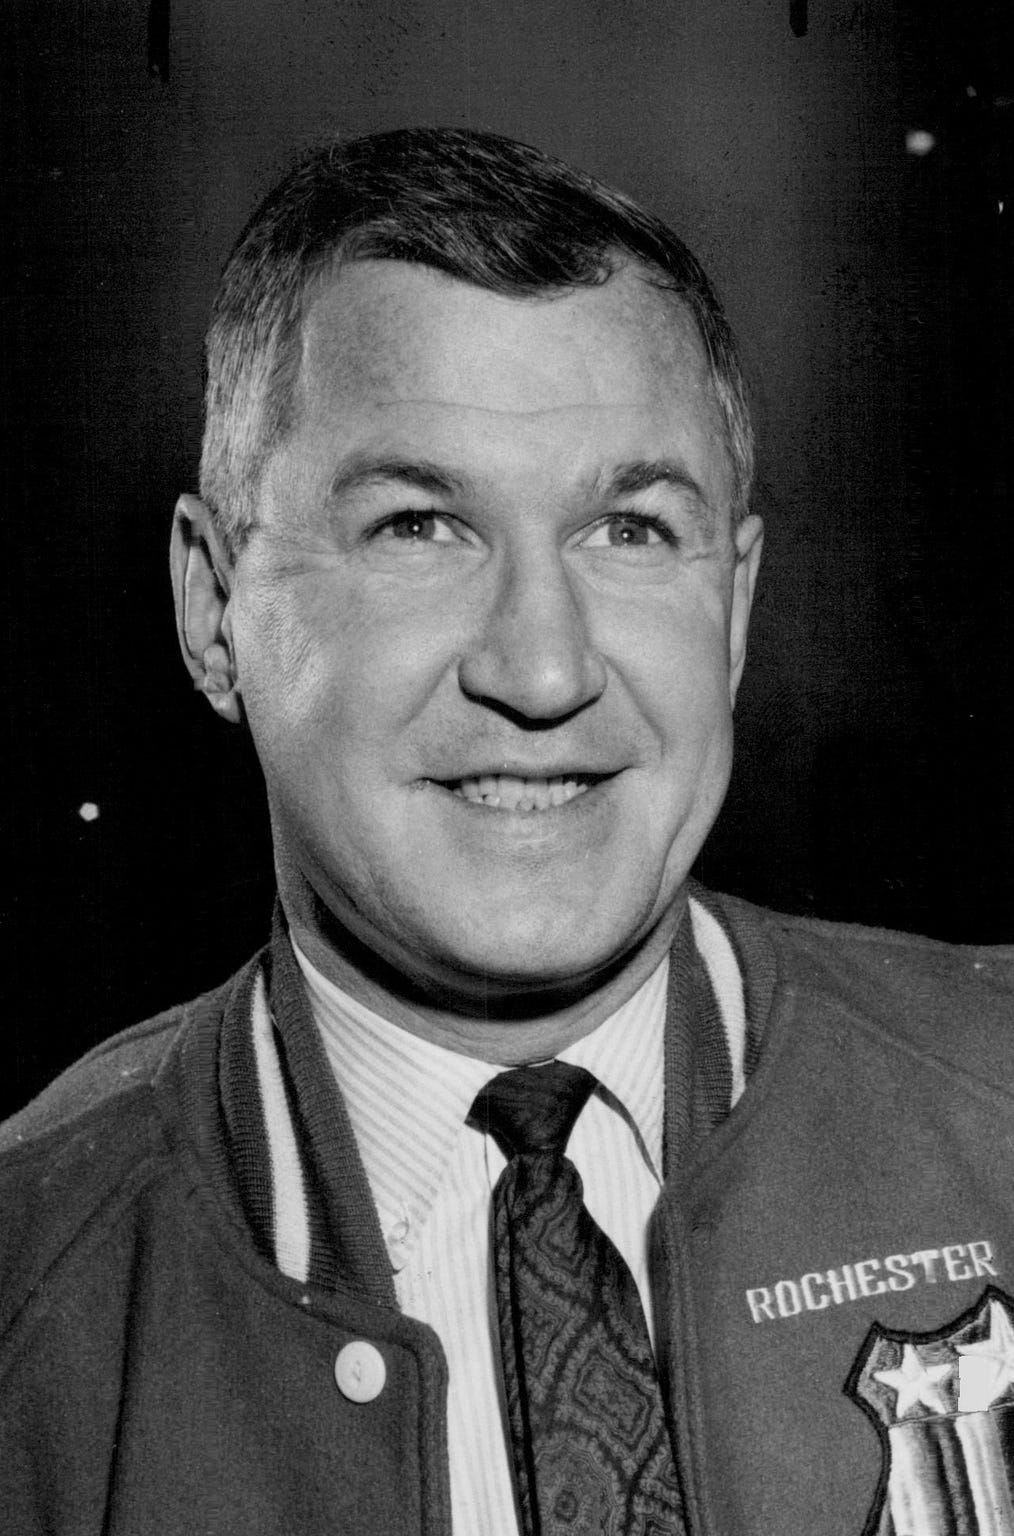 Joe Crozier coached the Rochester Americans to three Calder Cup championships between 1963-68.